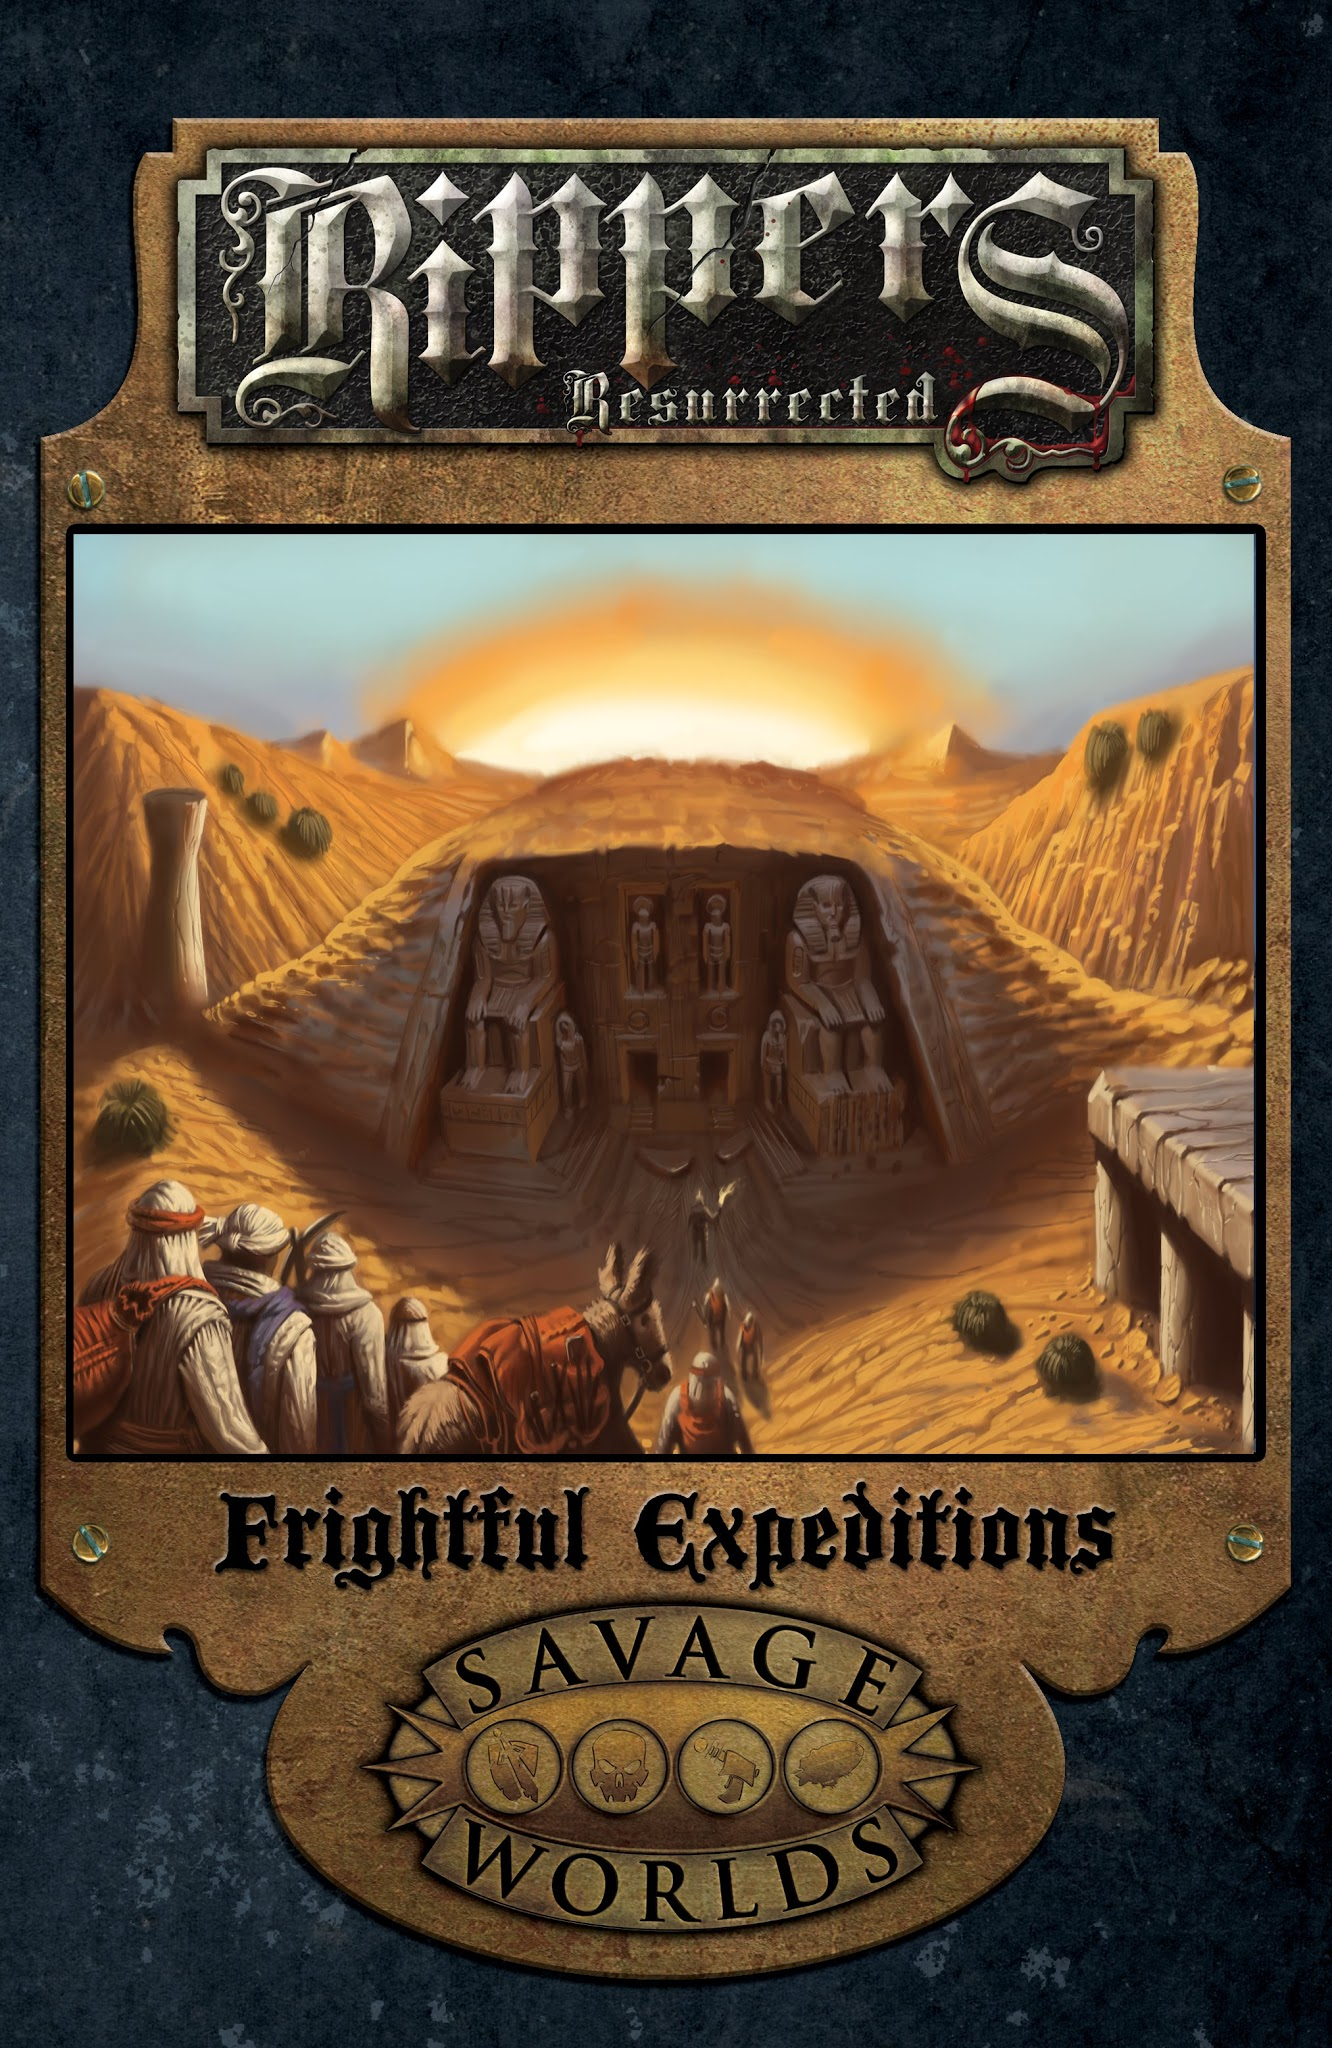 Frightful-expeditions-cover-mockup